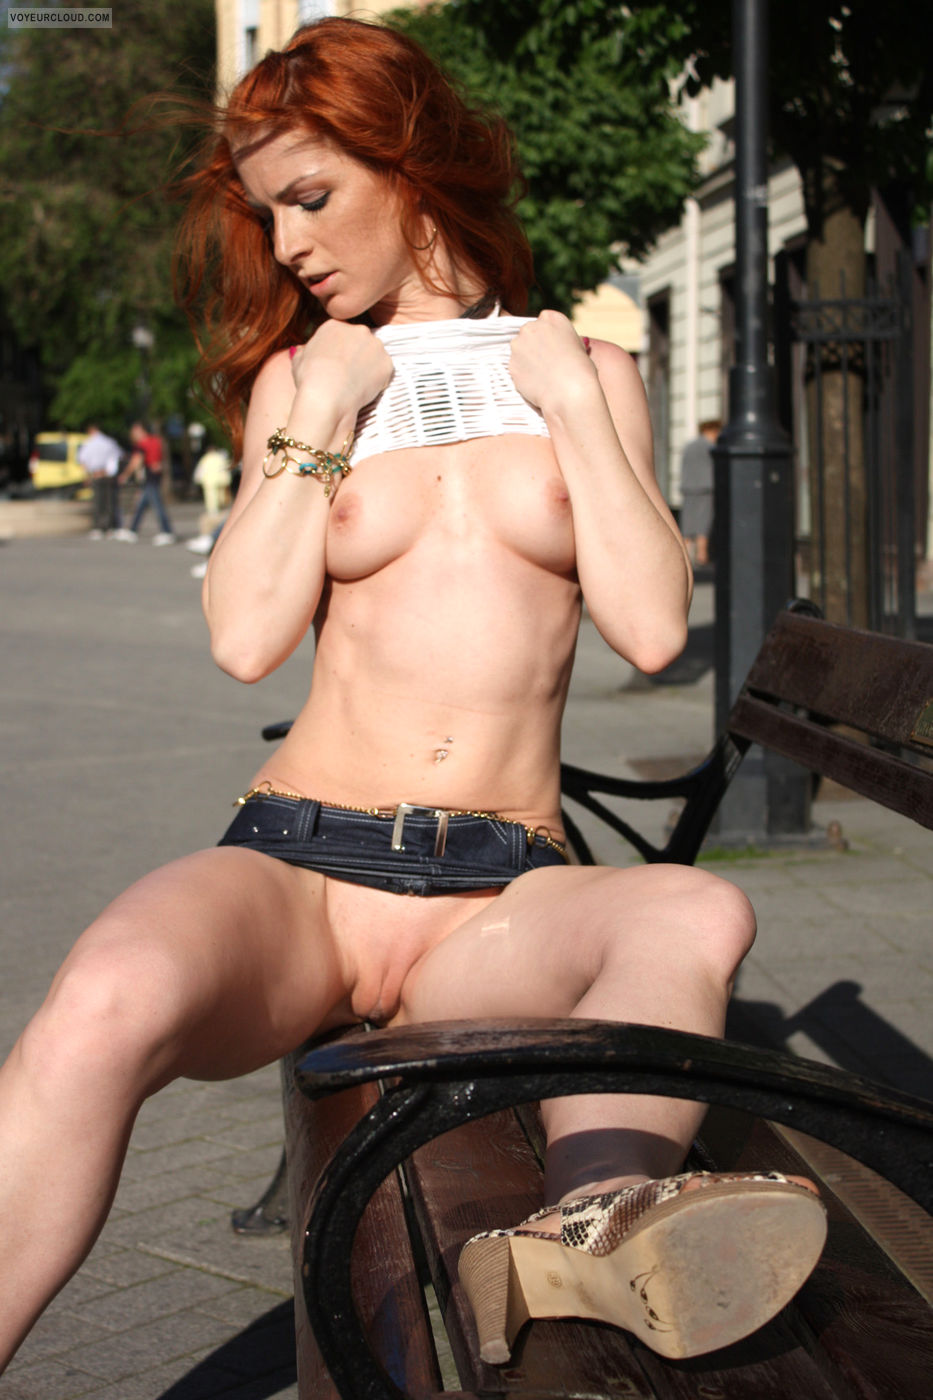 vienna-hungary-&-france-nude-public-04